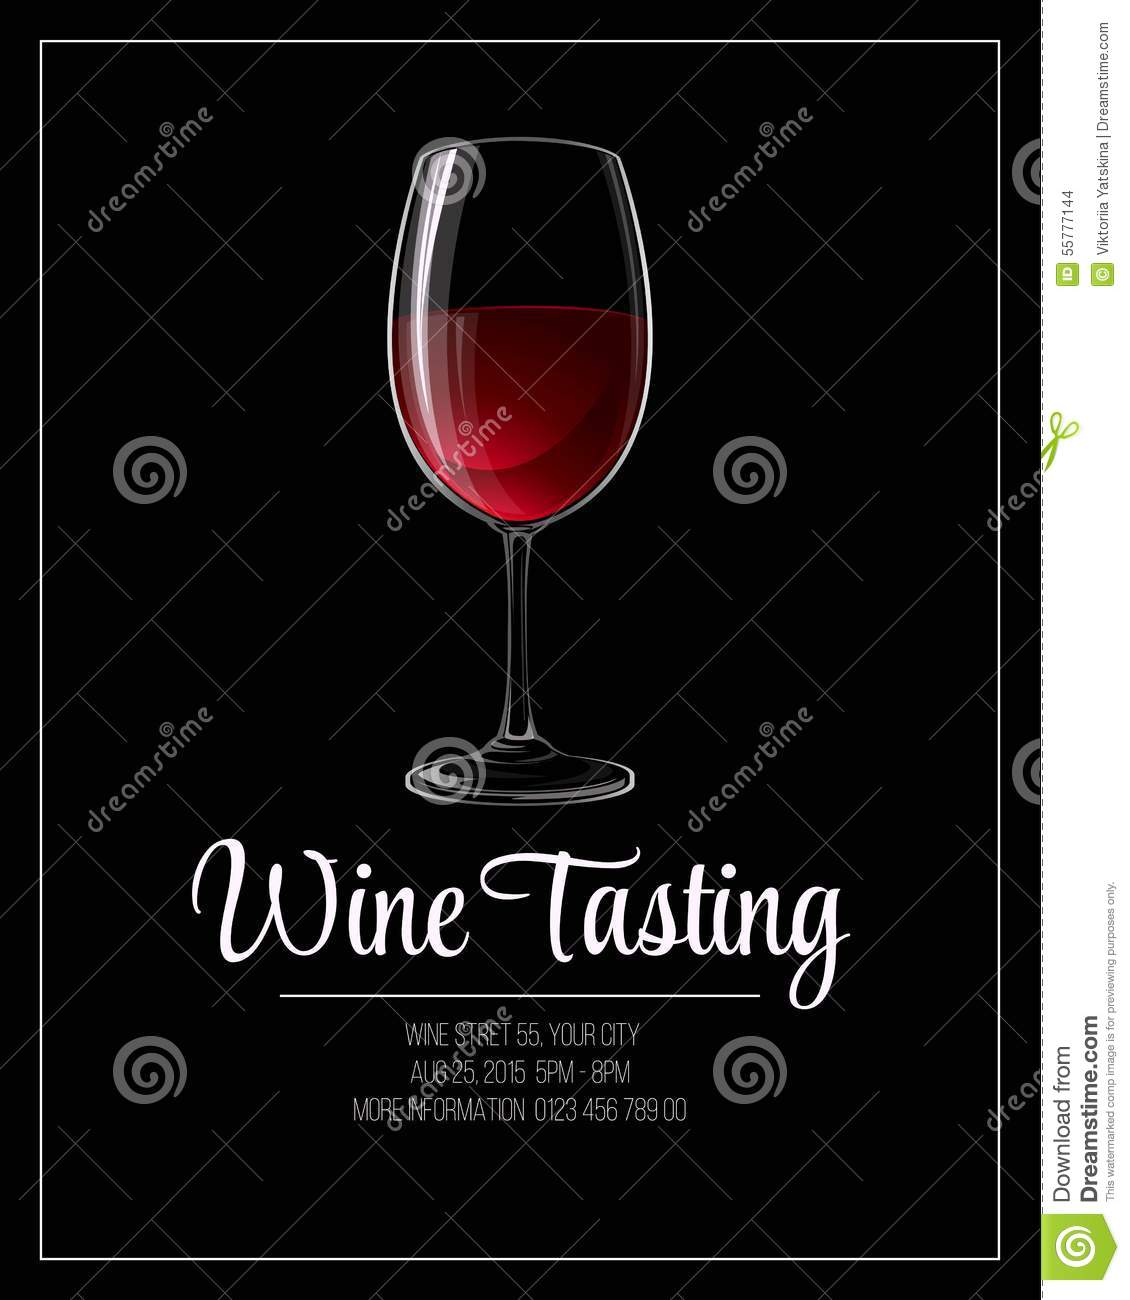 wine tasting flyer template vector illustration stock vector image 55777144. Black Bedroom Furniture Sets. Home Design Ideas